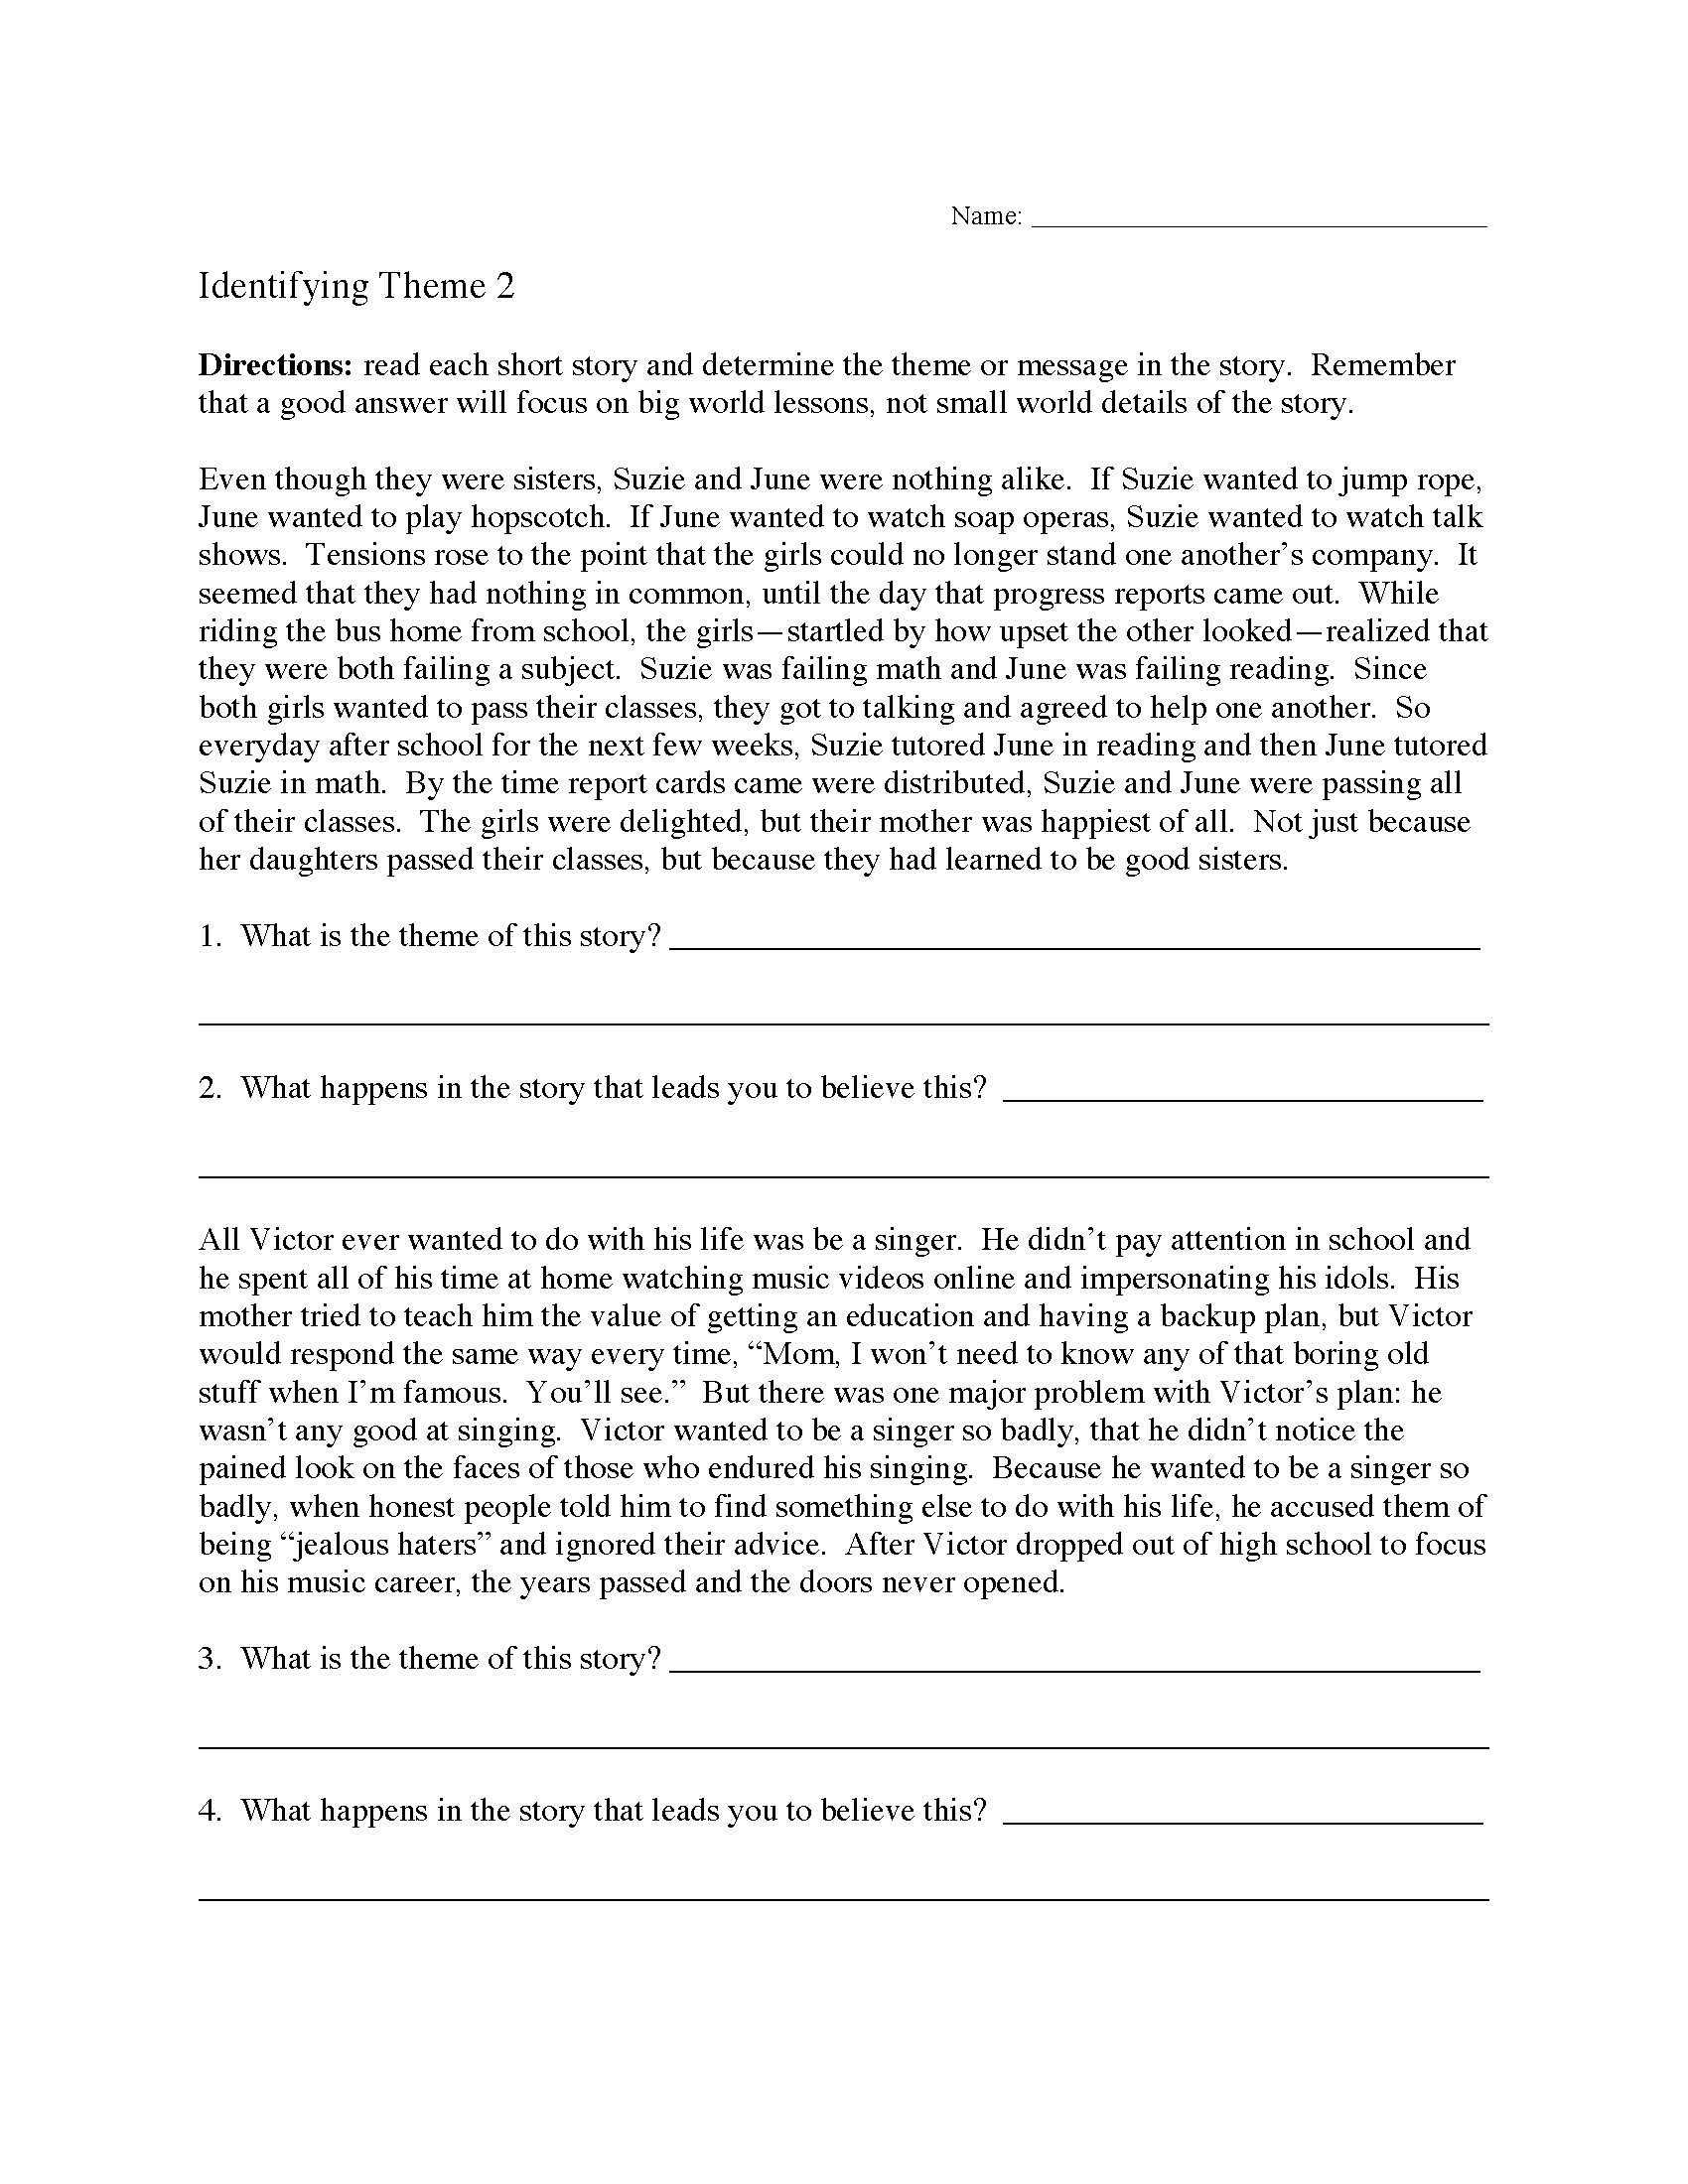 theme worksheet 02 01